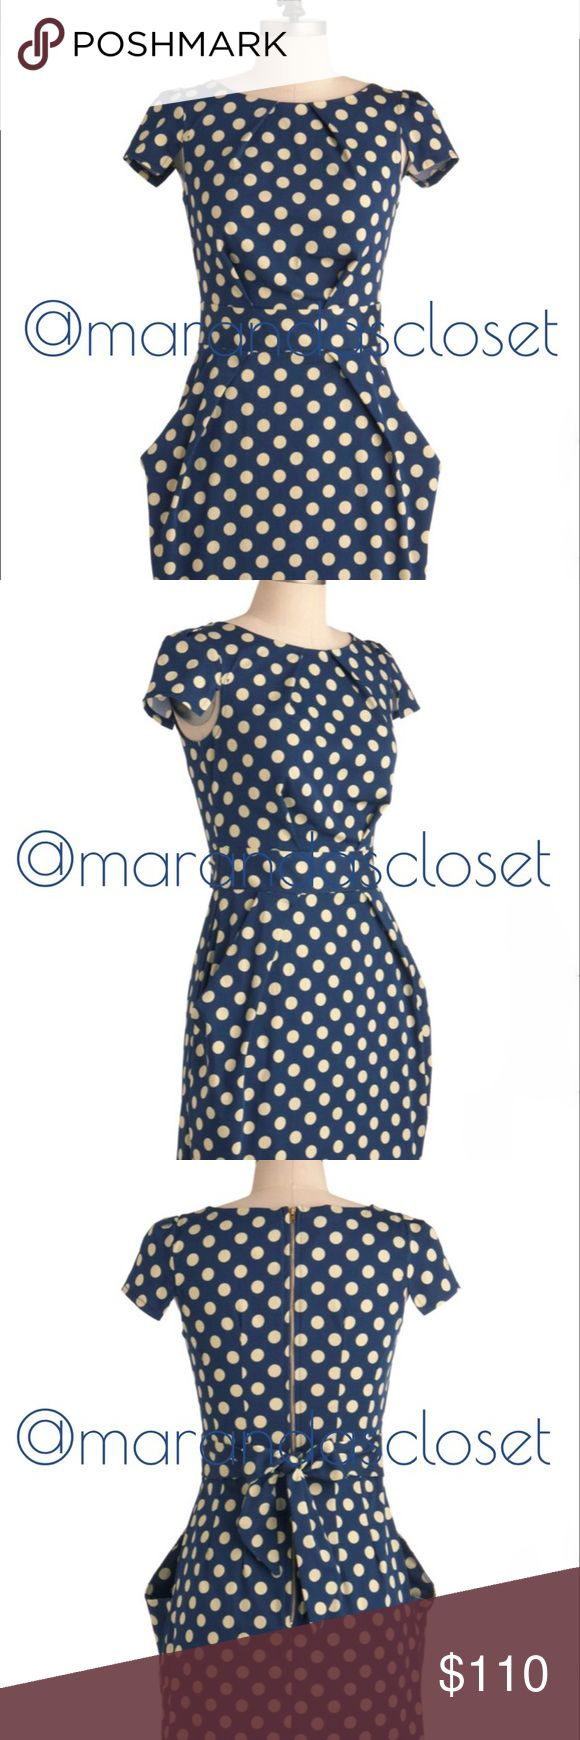 NWT! - Navy Polka Shift Dress w/ Pockets NWT!! ModCloths  Tapioca Dokey Dress in 6 (US)  Brand: Closet London Length: 33.5 inches  -- UK Size: 8 -- US Size: 6  Details: 97% Cotton, 3% Spandex. Unlined. Back zipper closure. Hip Pockets. Imported  All Items Ship Monday - Thursday; Excluding Holidays  --Sorry No-Trades No-Holds  --Low Ball Offers Will Be Declined! --Please Ask❓ Before You Buy! Thanks for stopping by! Closet London Dresses